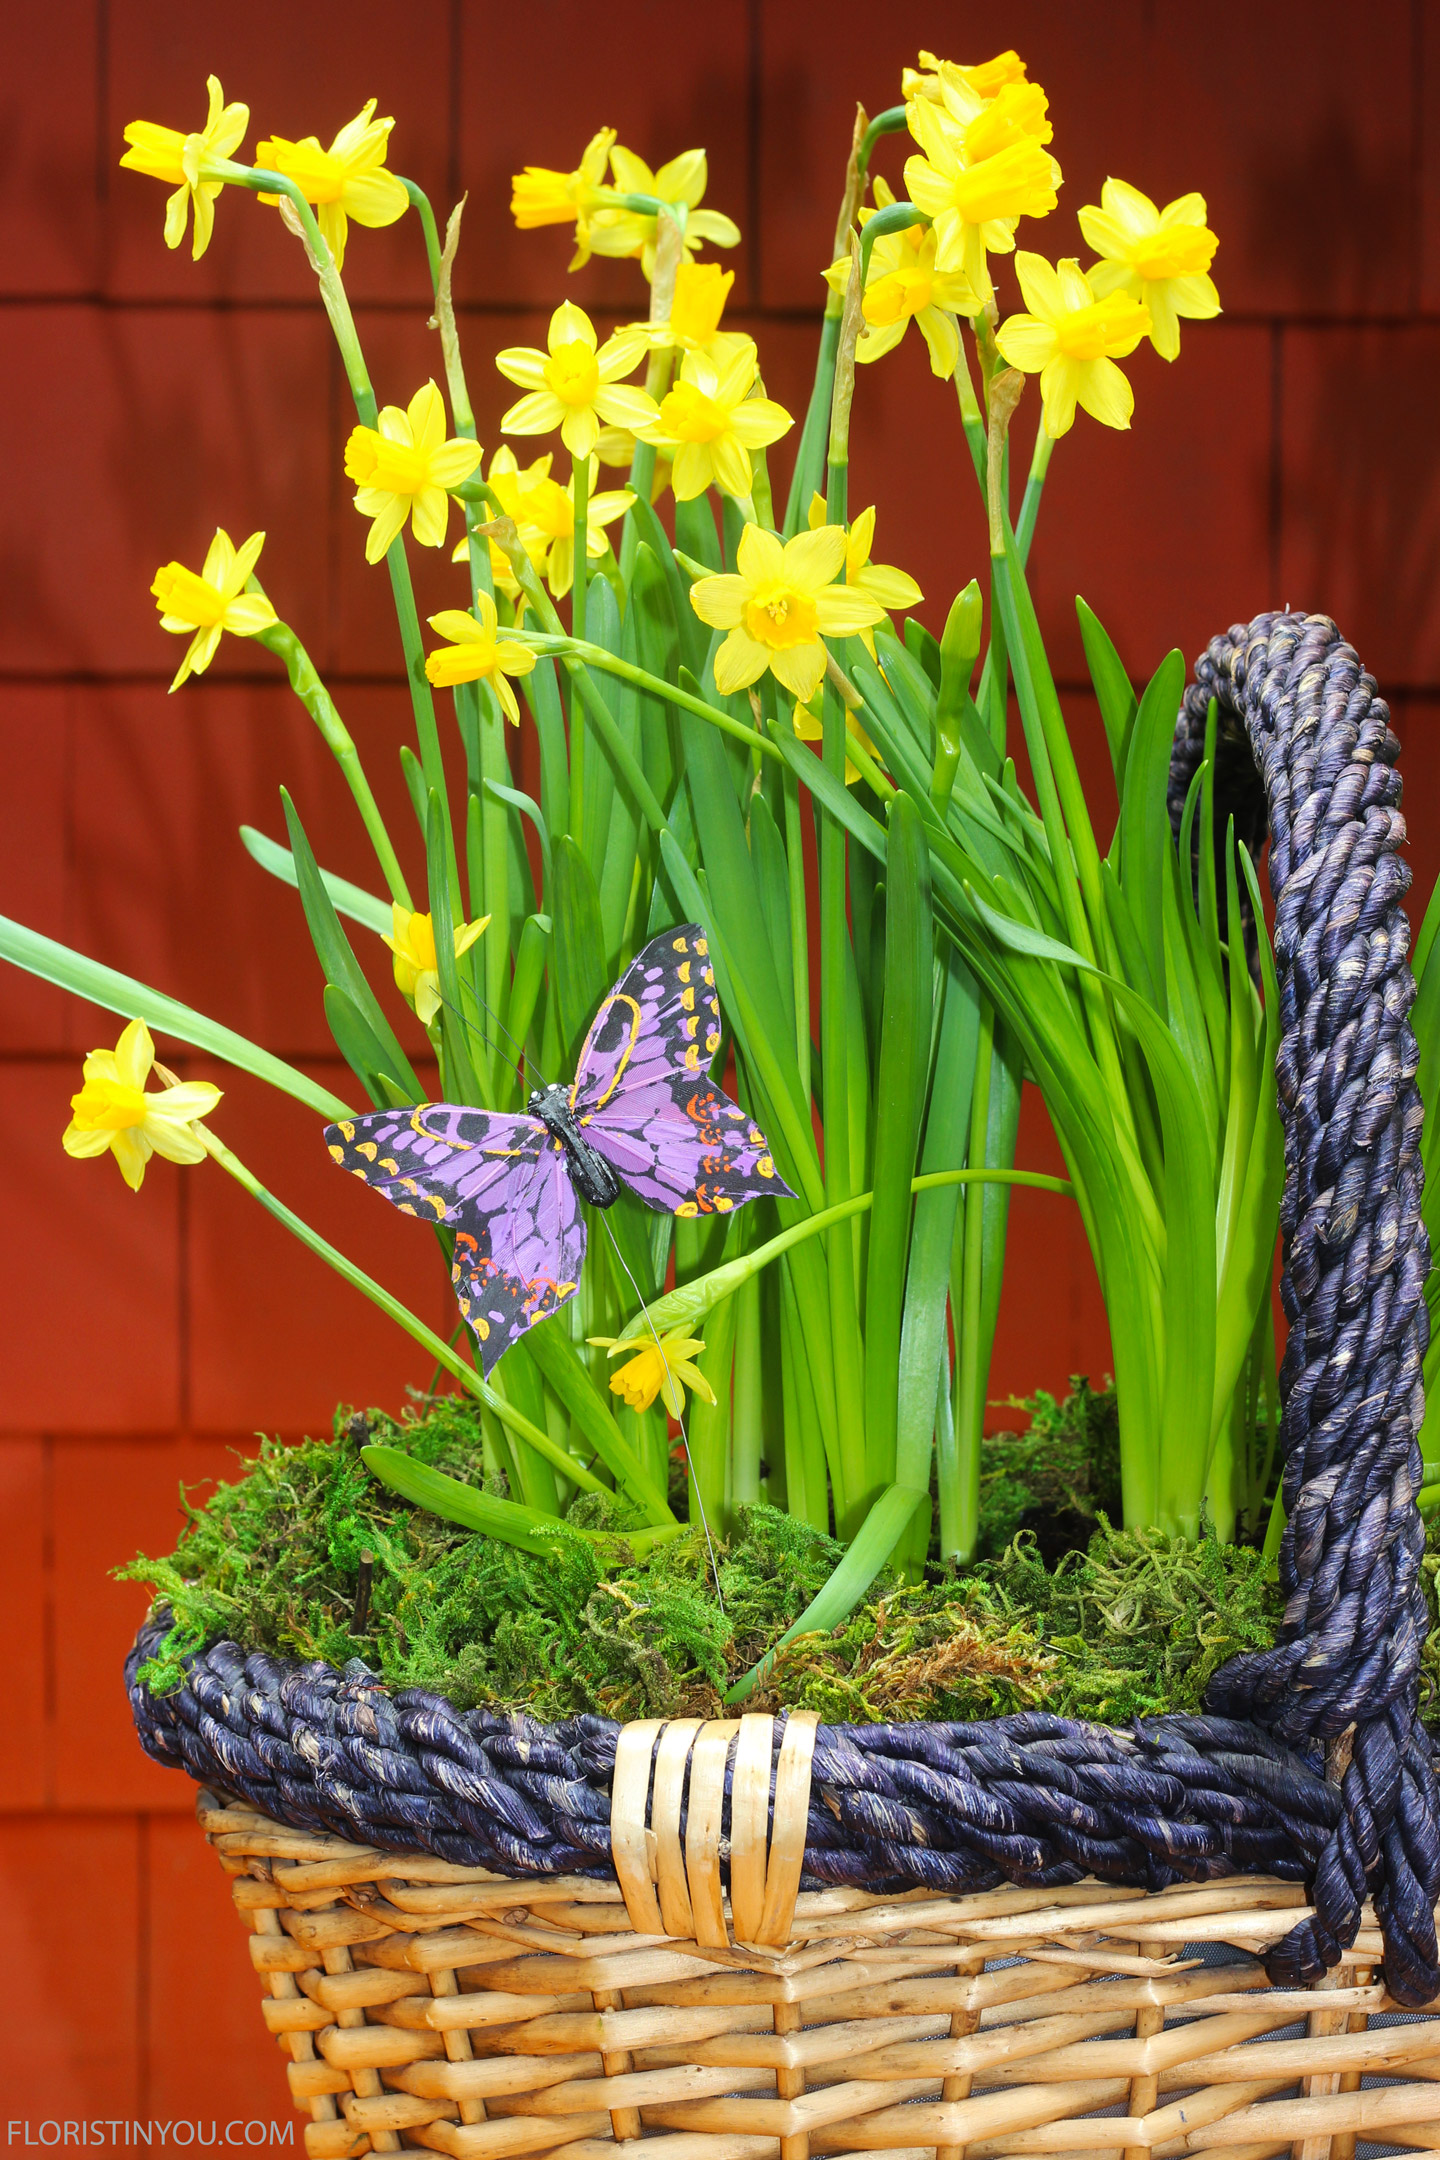 Stick purple butterfly wire through moss into dirt on left side of basket.